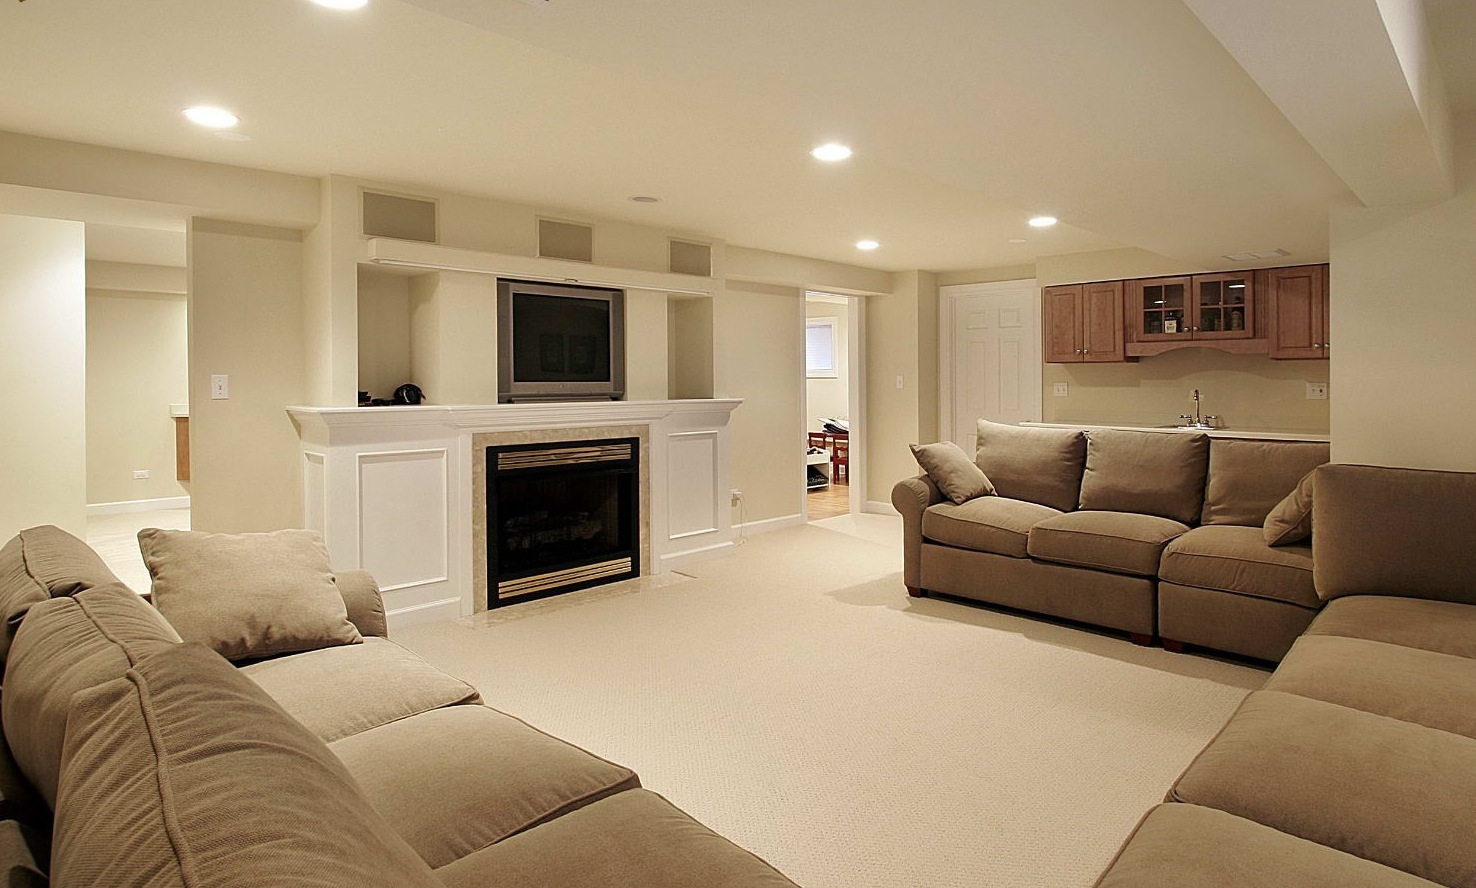 Remodeling Ideas 30 basement remodeling ideas & inspiration